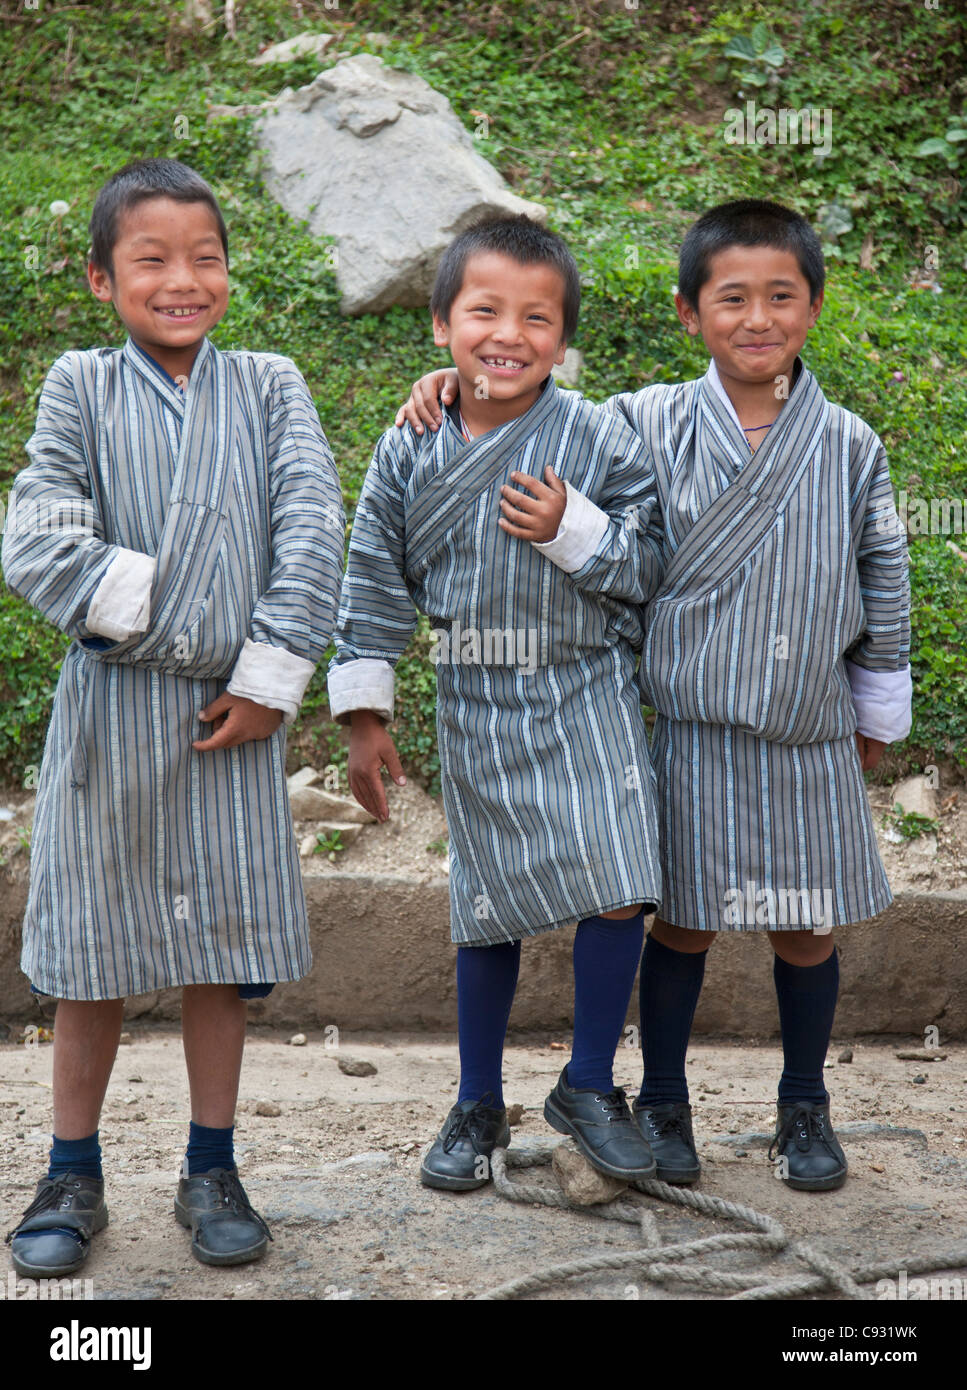 Happy school children in Mongar, a small hilltop town in East Bhutan. - Stock Image